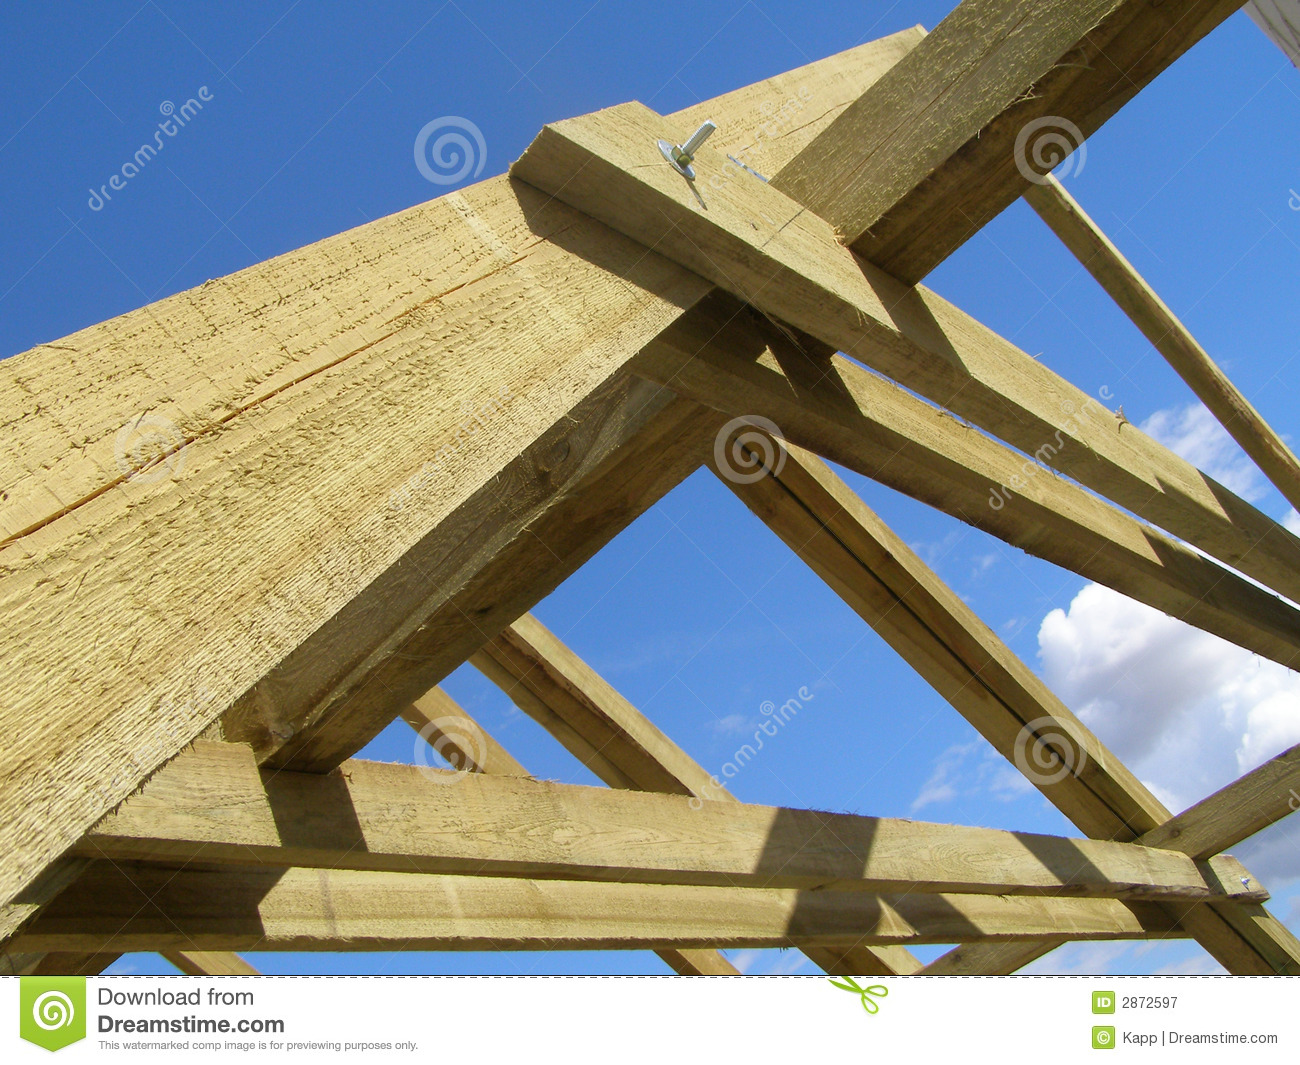 Roof truss royalty free stock photography image 2872597 for Roof truss sign